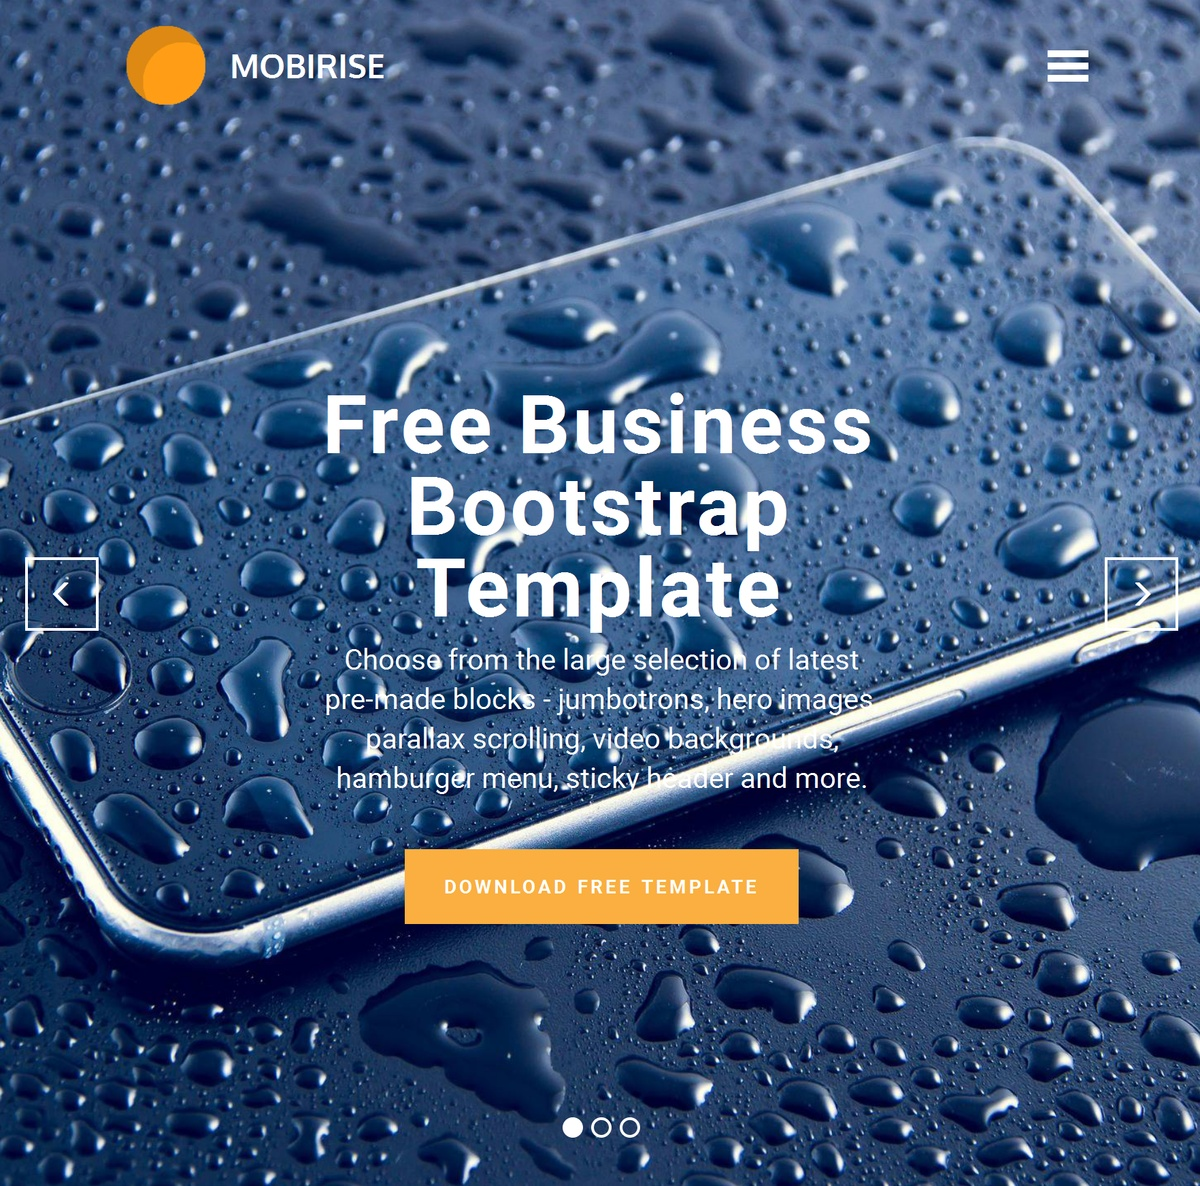 HTML5 Responsive Site Templates Themes Extensions